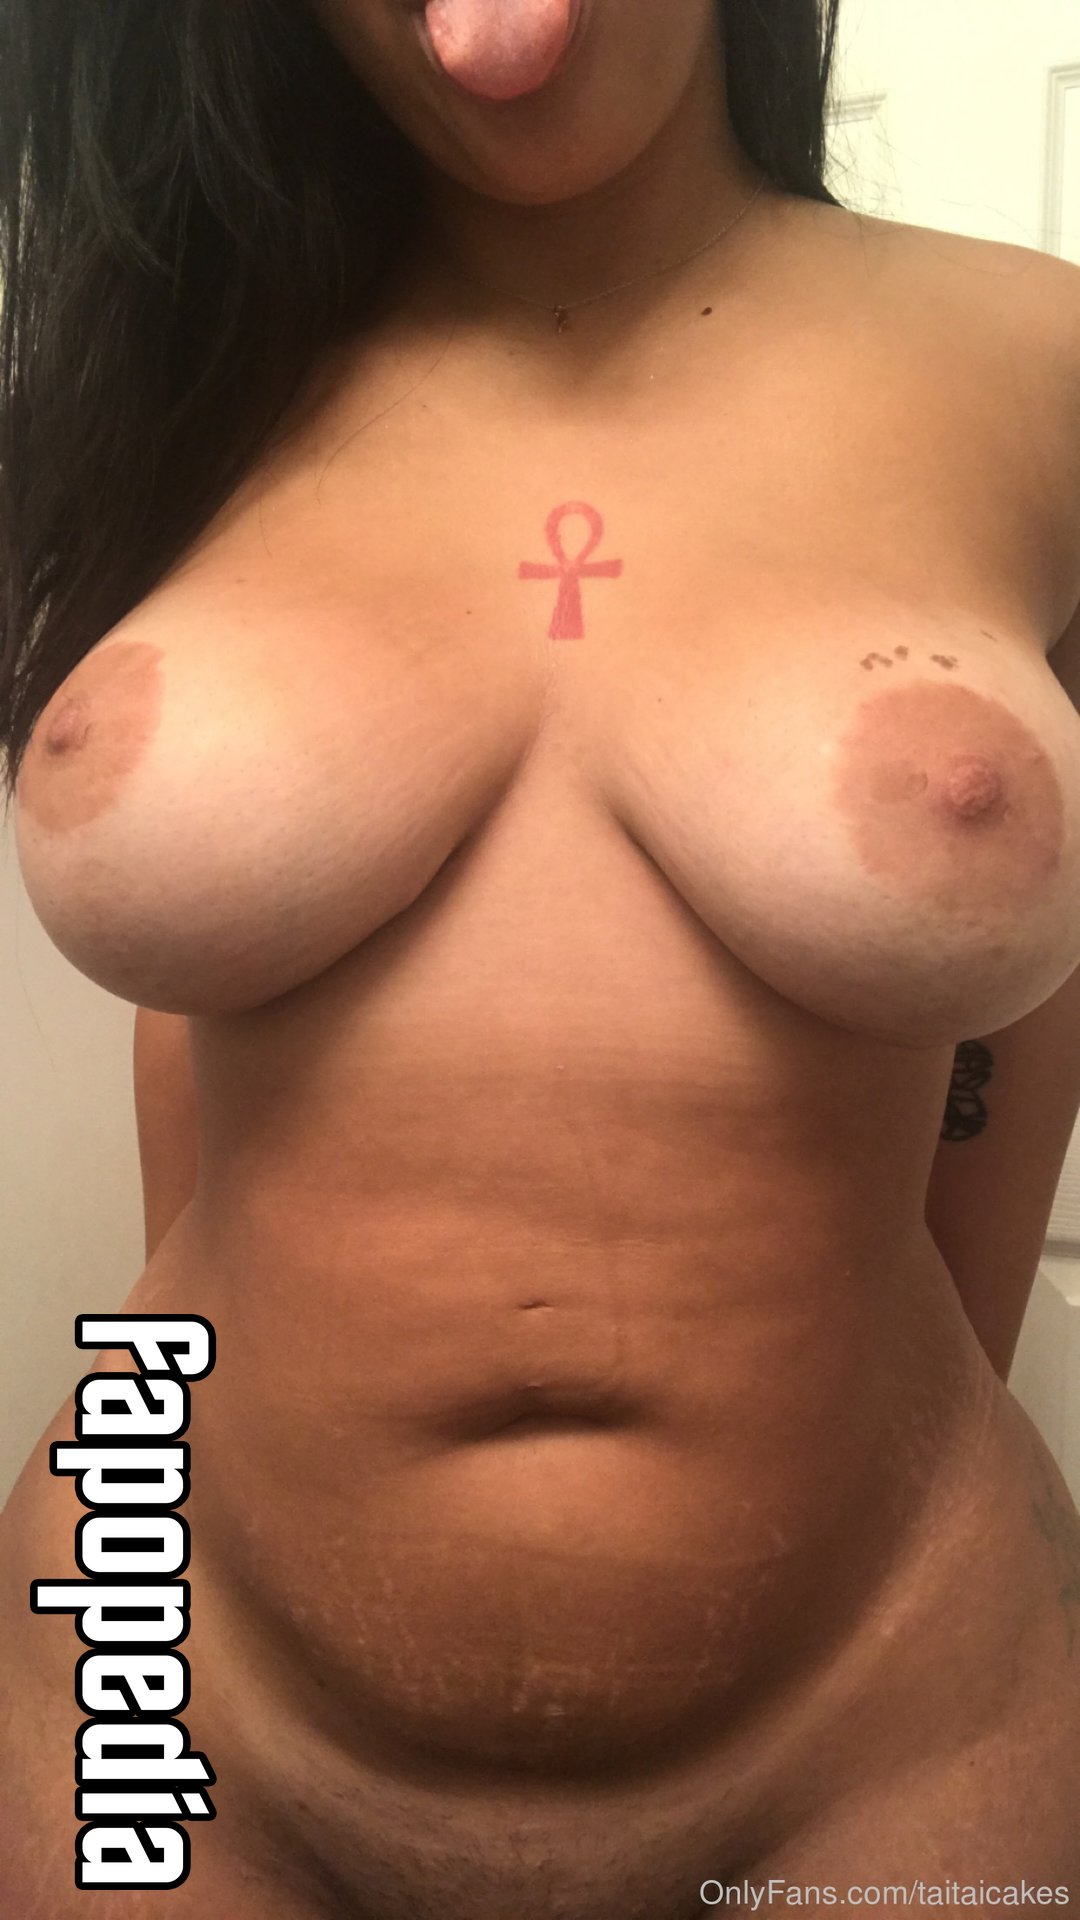 TaiTaiCakes Nude OnlyFans Leaks